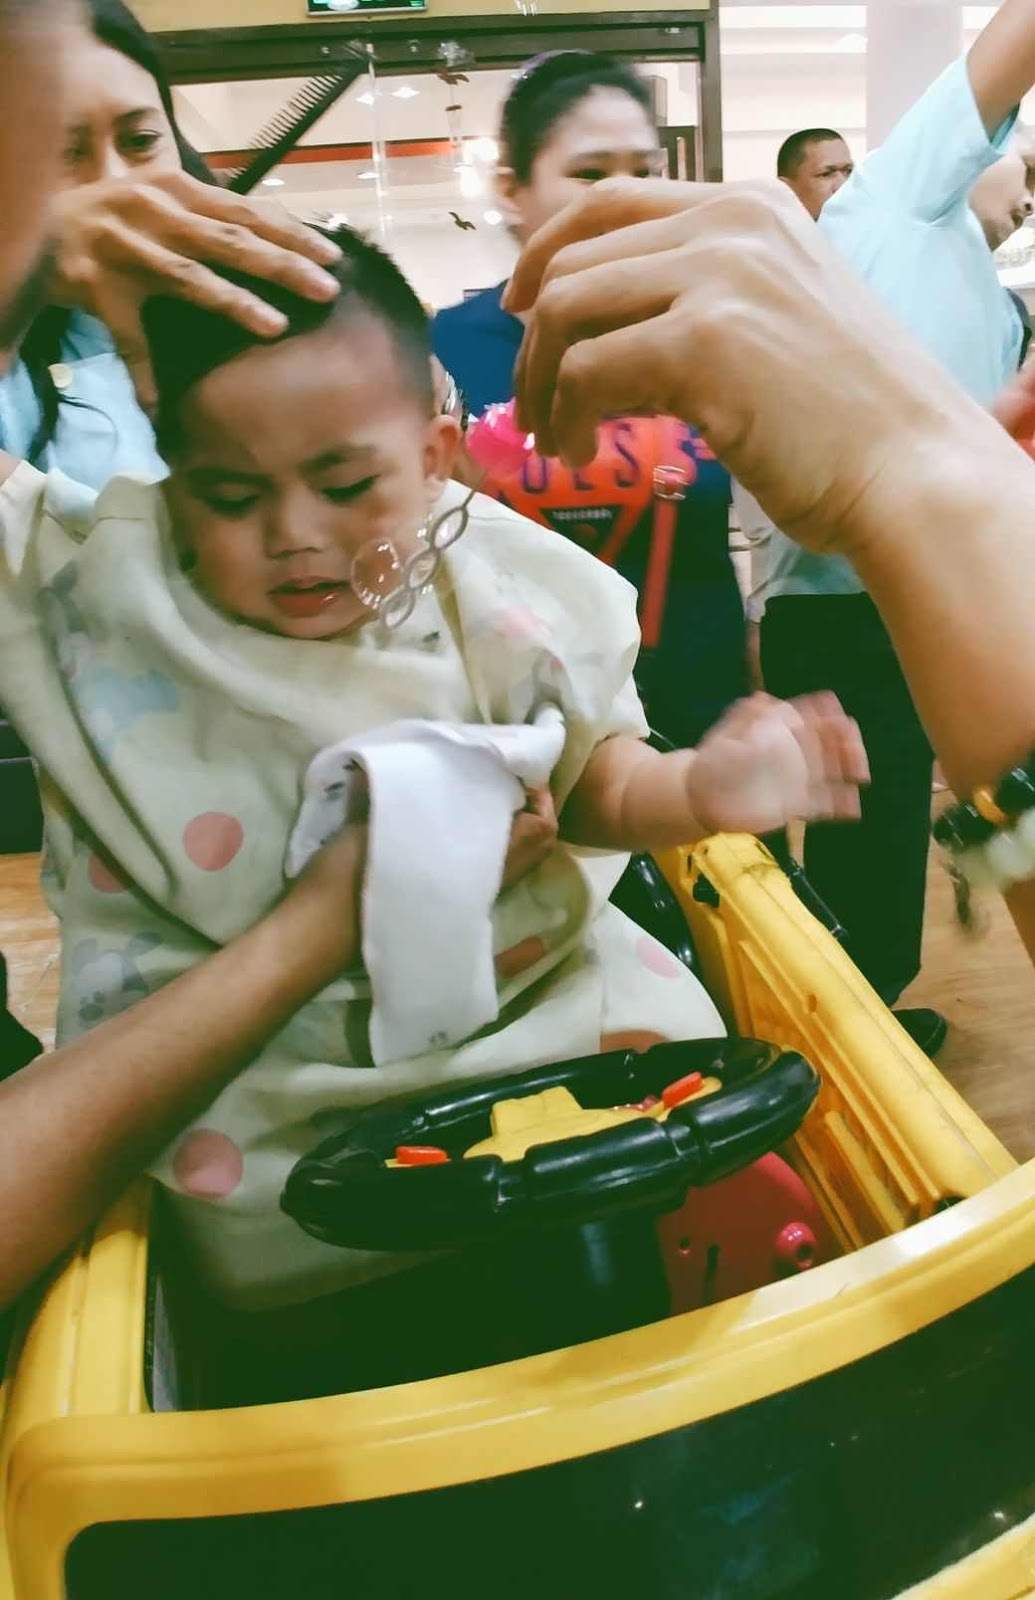 Miguel a bit agitated during his first haircut at Cuts 4 Tots